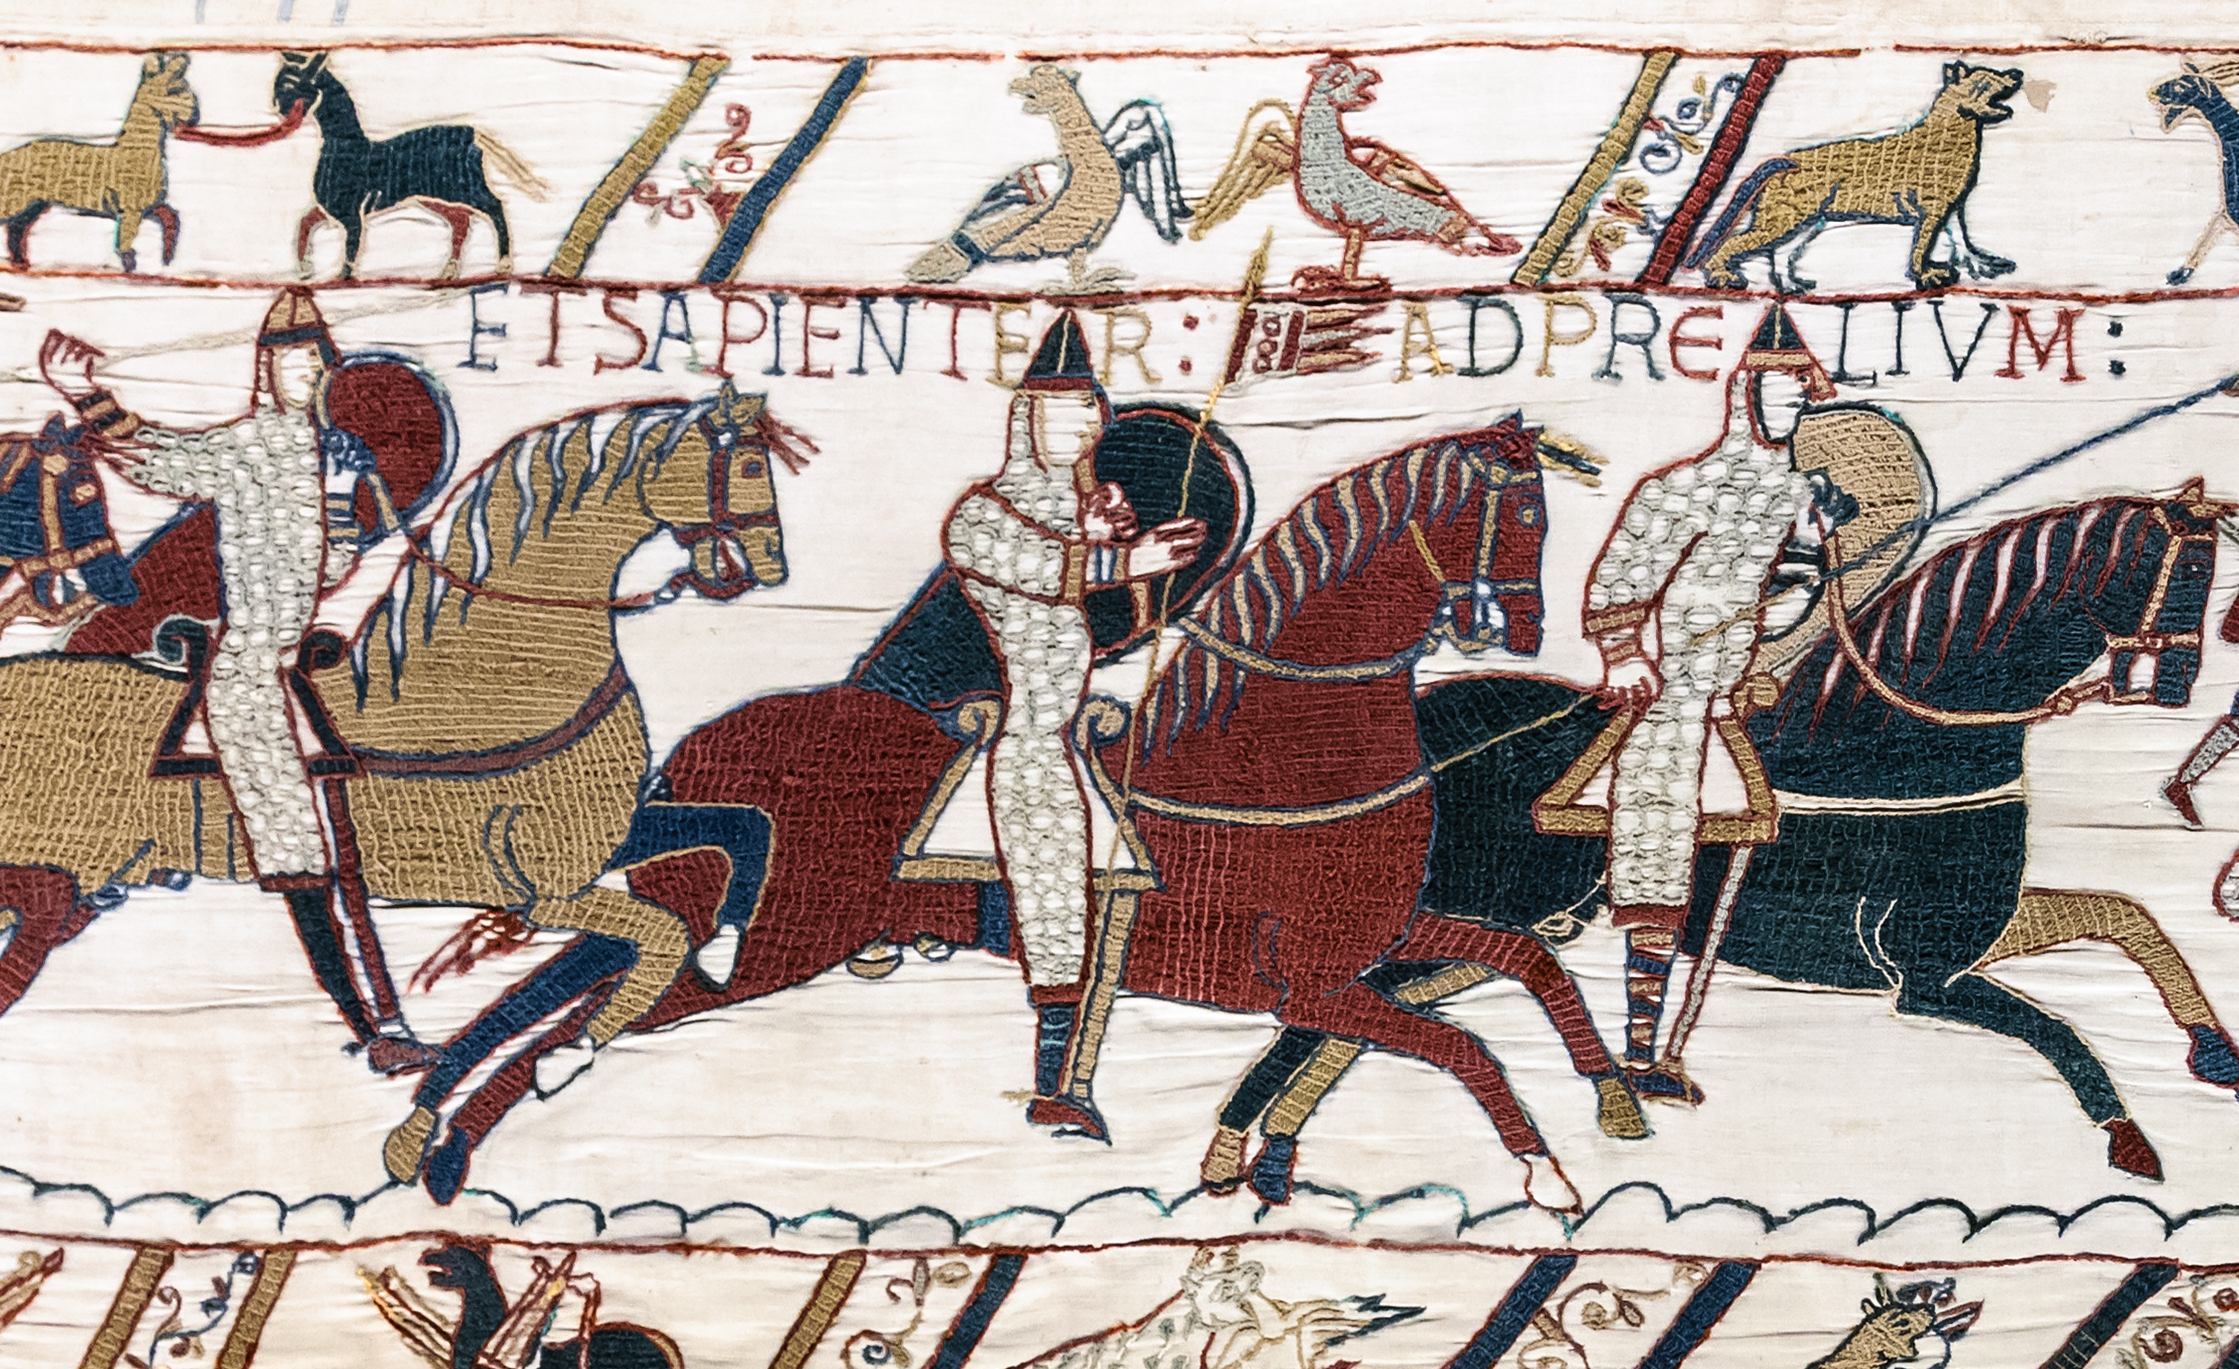 a history of the norman conquest at the battle of hastings This year, the battle conference on anglo-norman studies will obviously commemorate the 950th anniversary of the norman conquest of england at the site of the battle of hastings in battle.